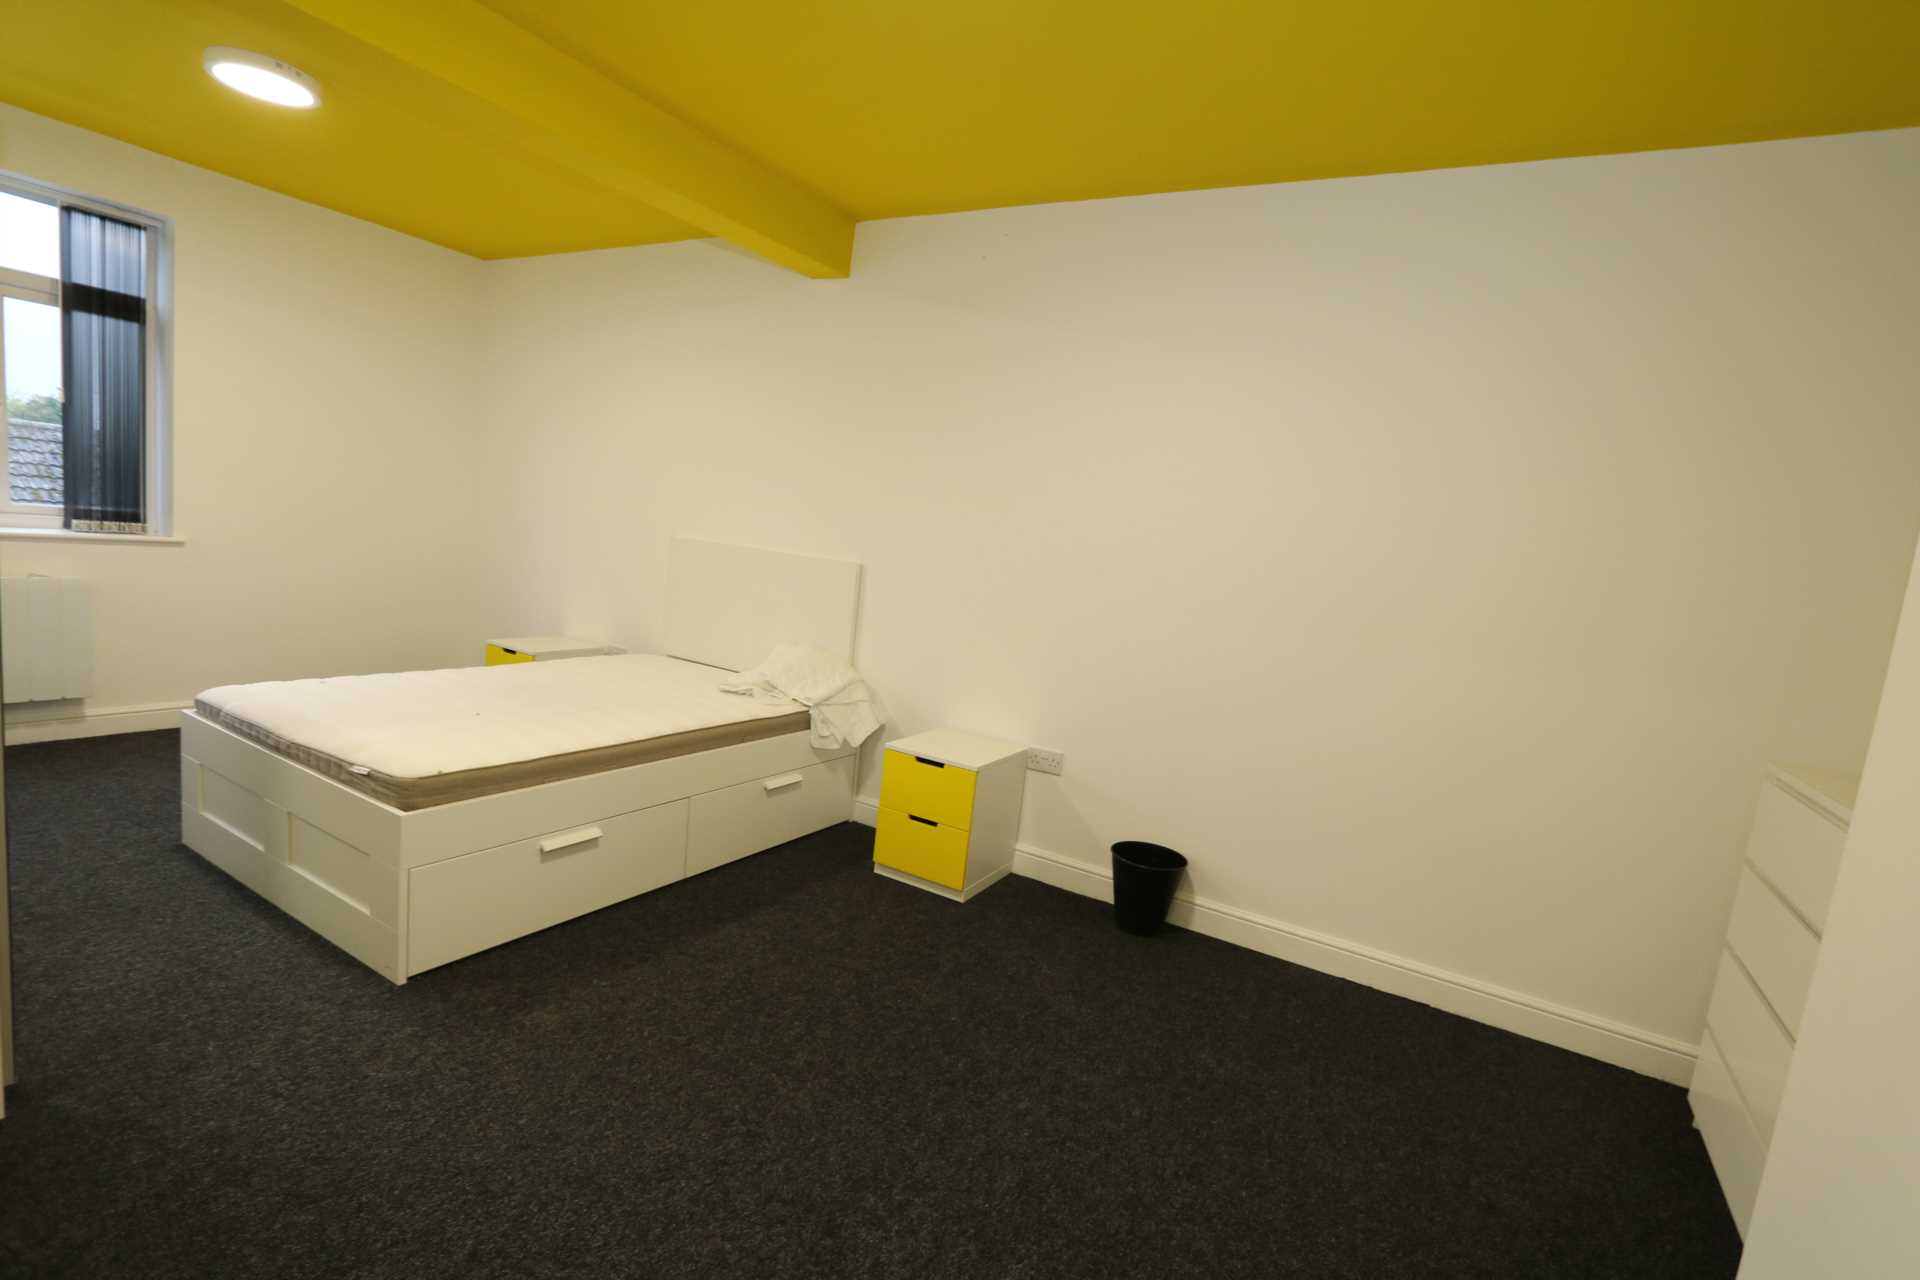 Room 8C Kings Court new development fully furnished student accommodation with en suite, all bills included - NO FEES, Image 1